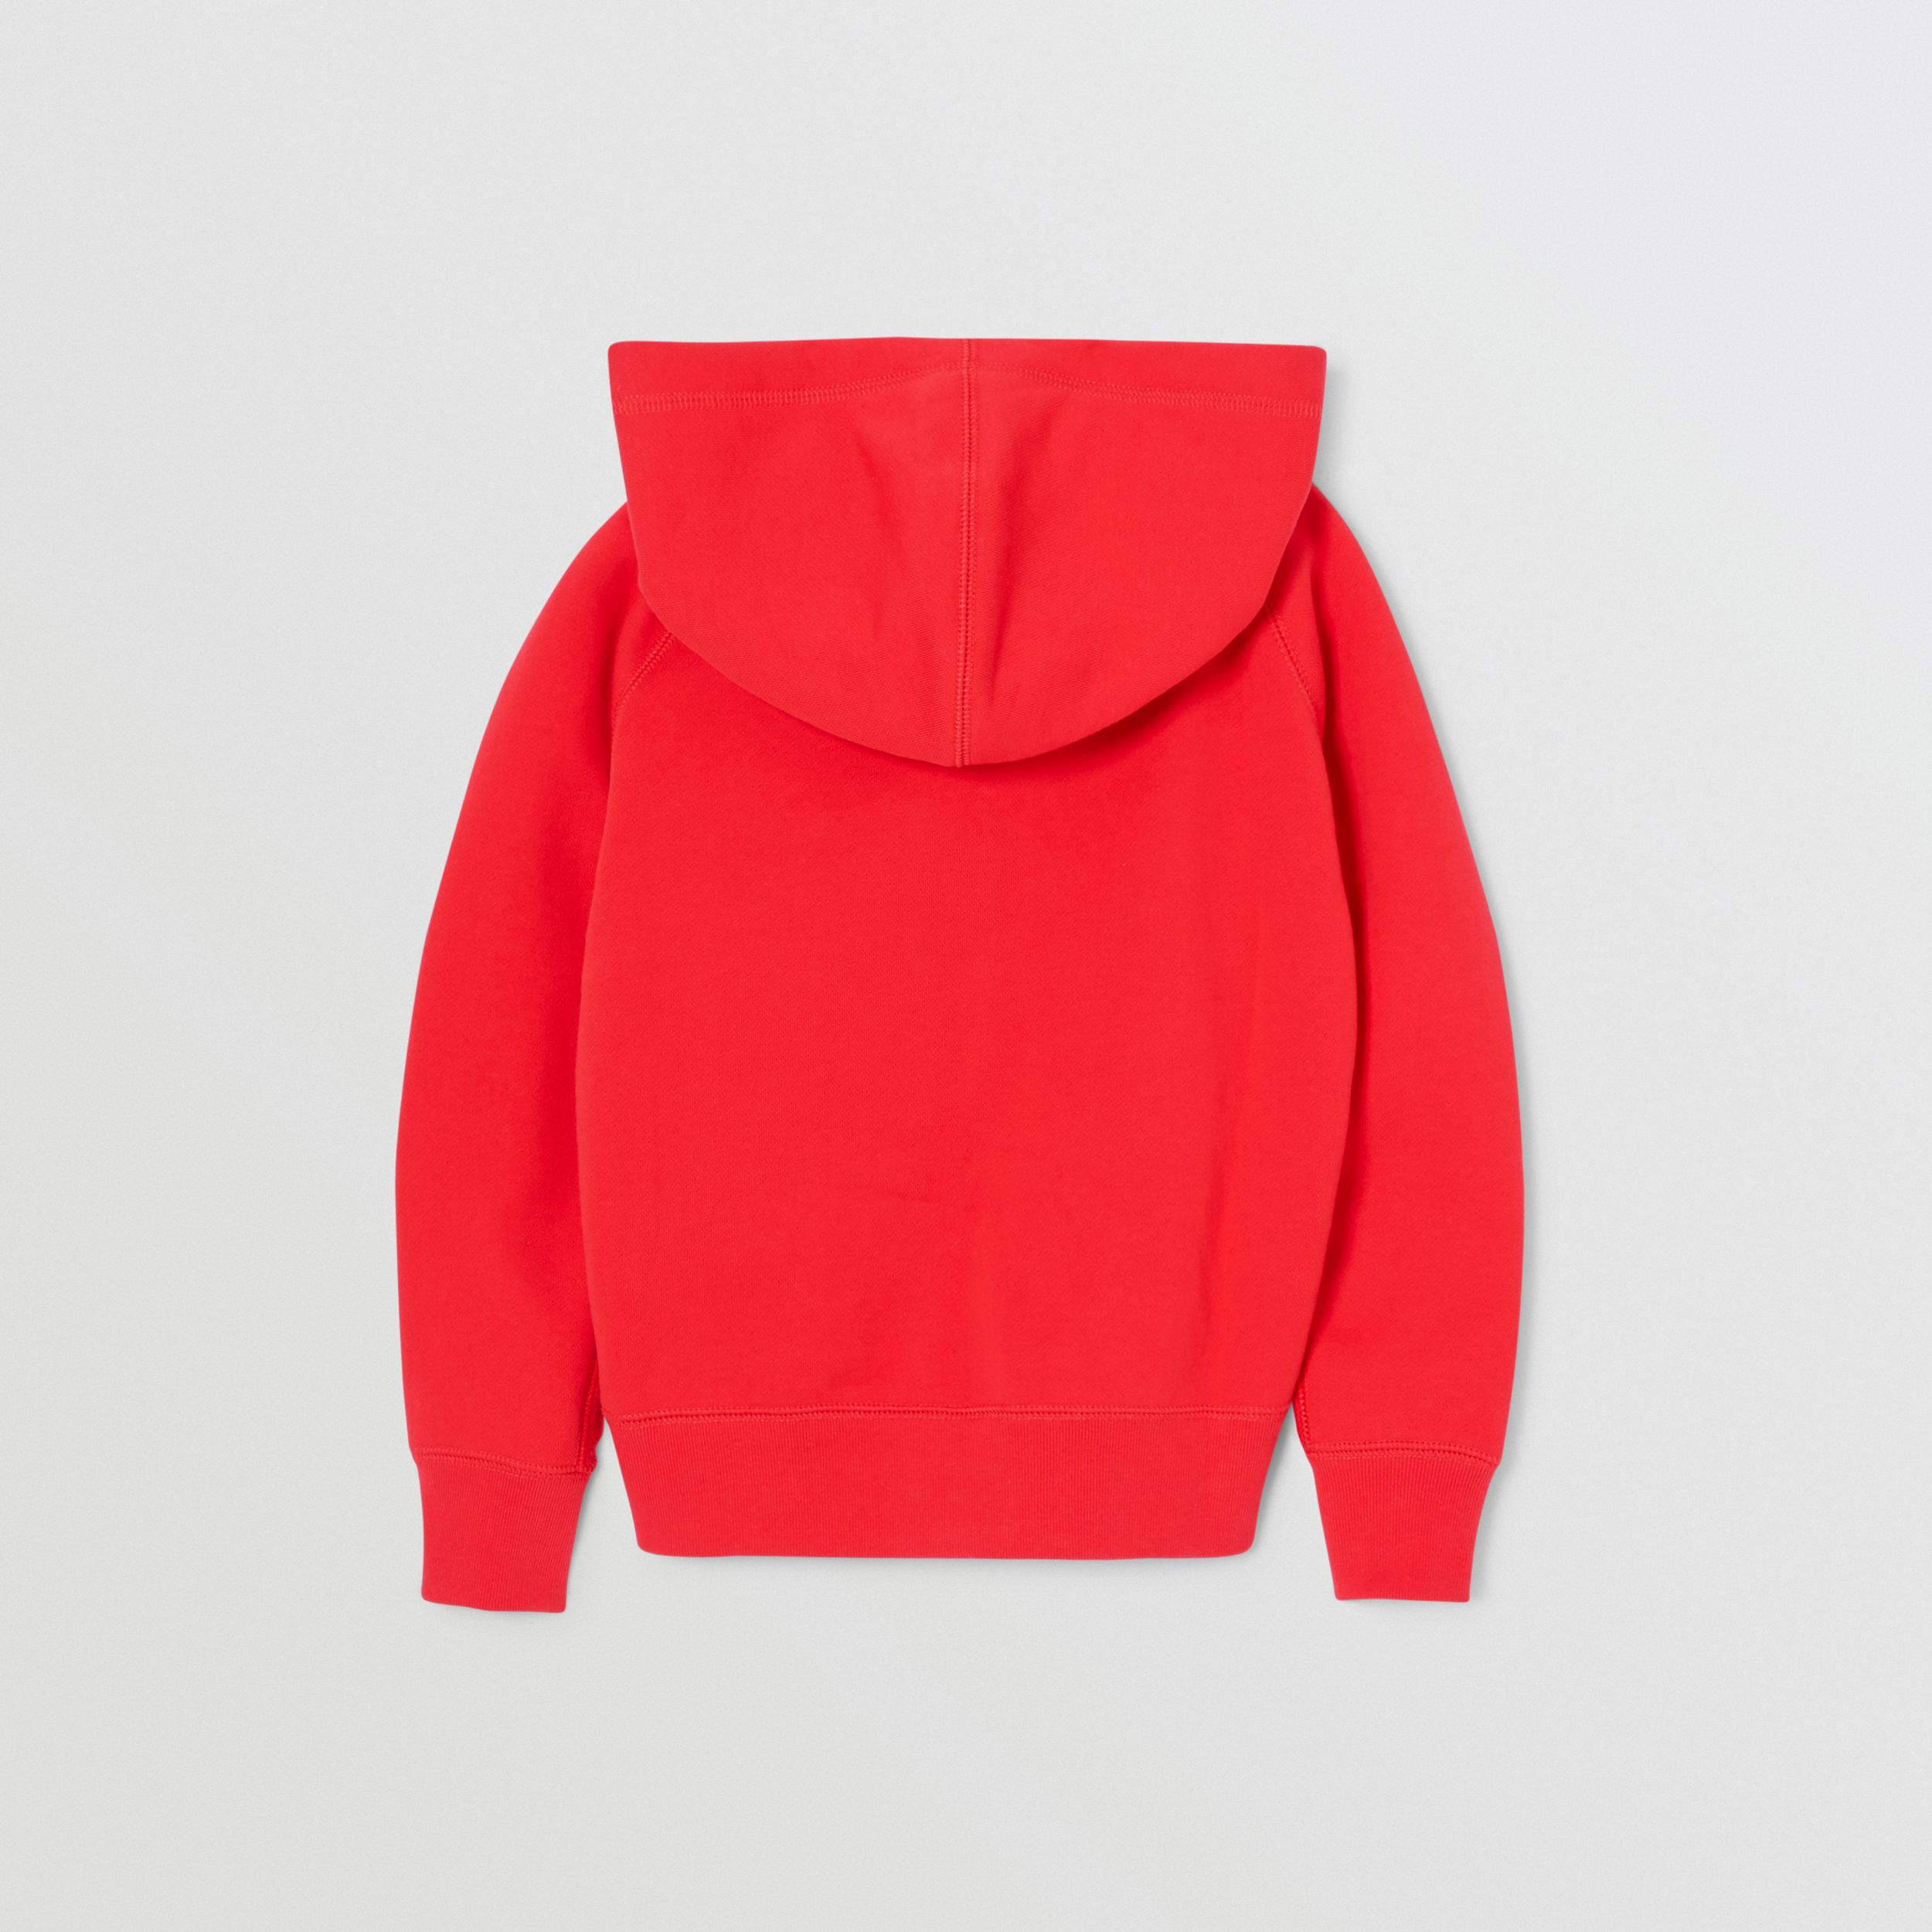 Contrast Logo Graphic Cotton Hooded Top in Bright Red | Burberry - 4